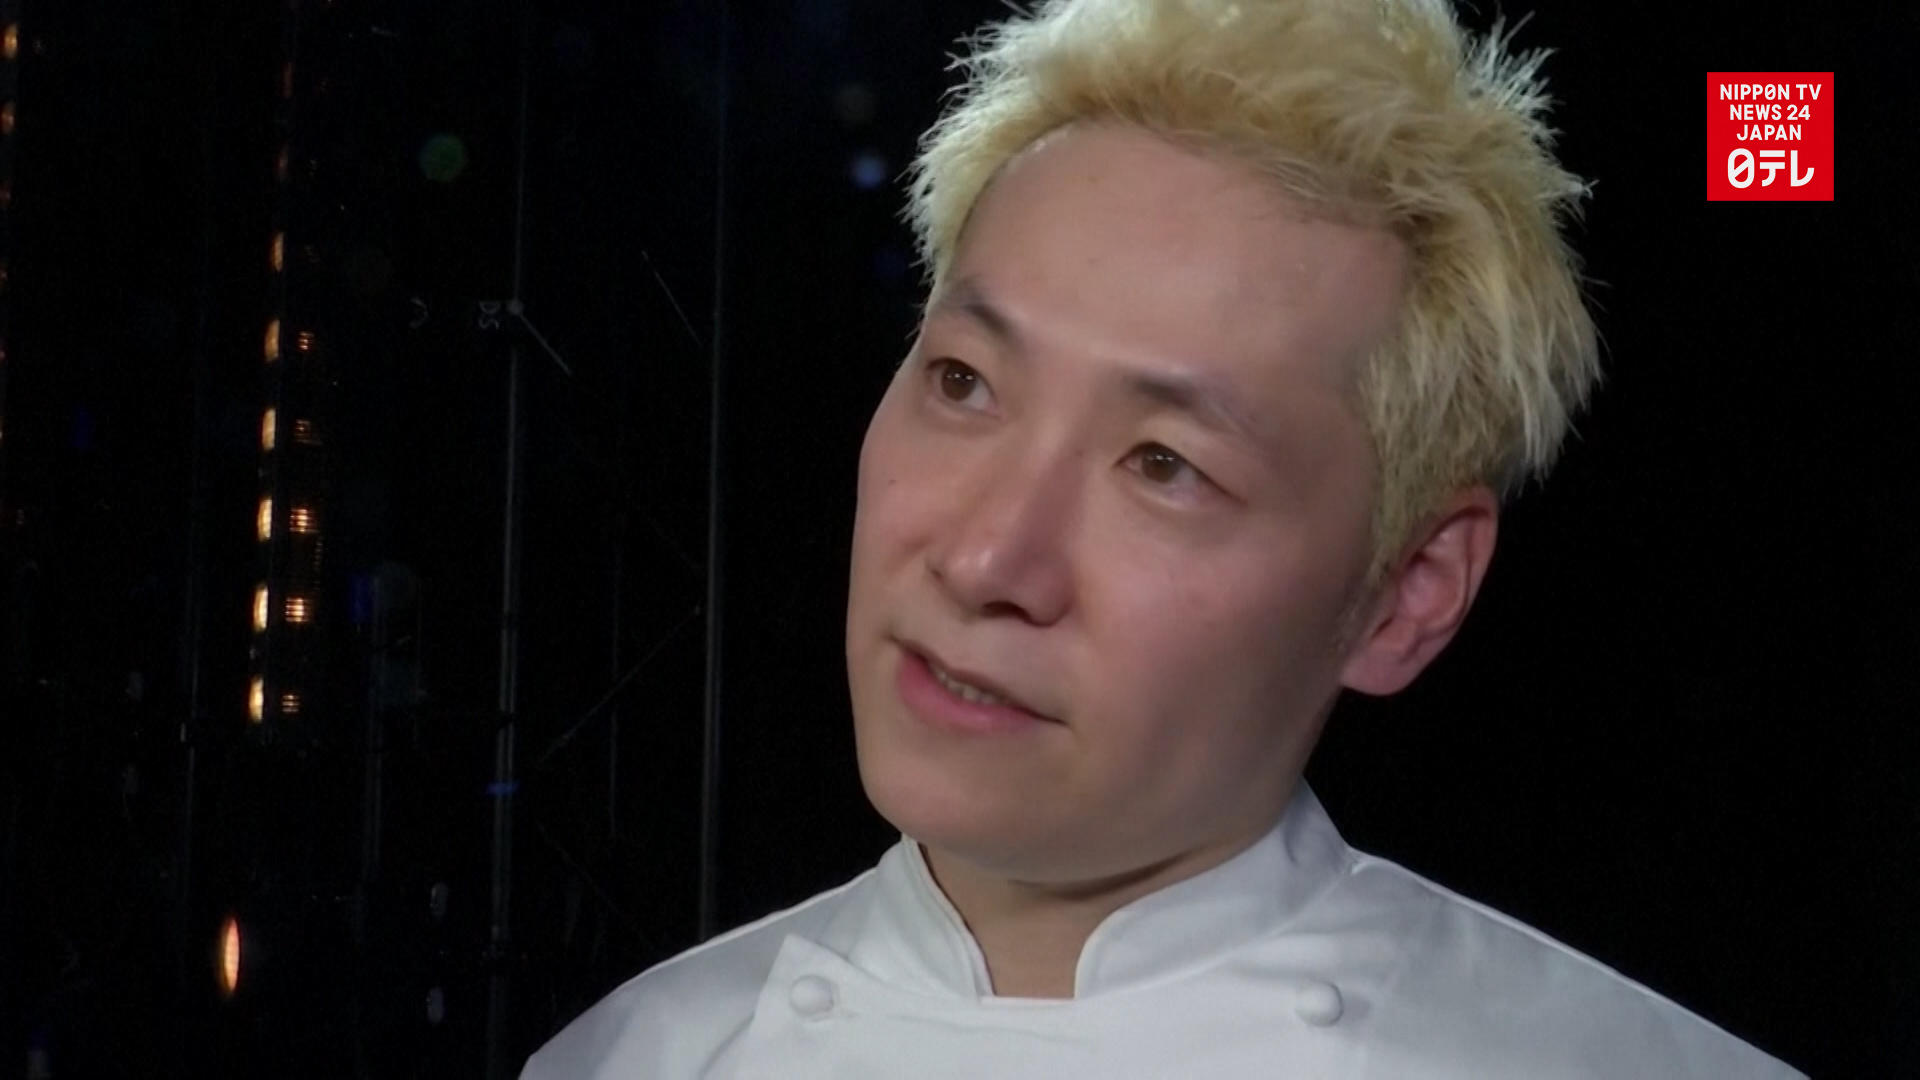 France's first Japanese 3-star Michelin chef